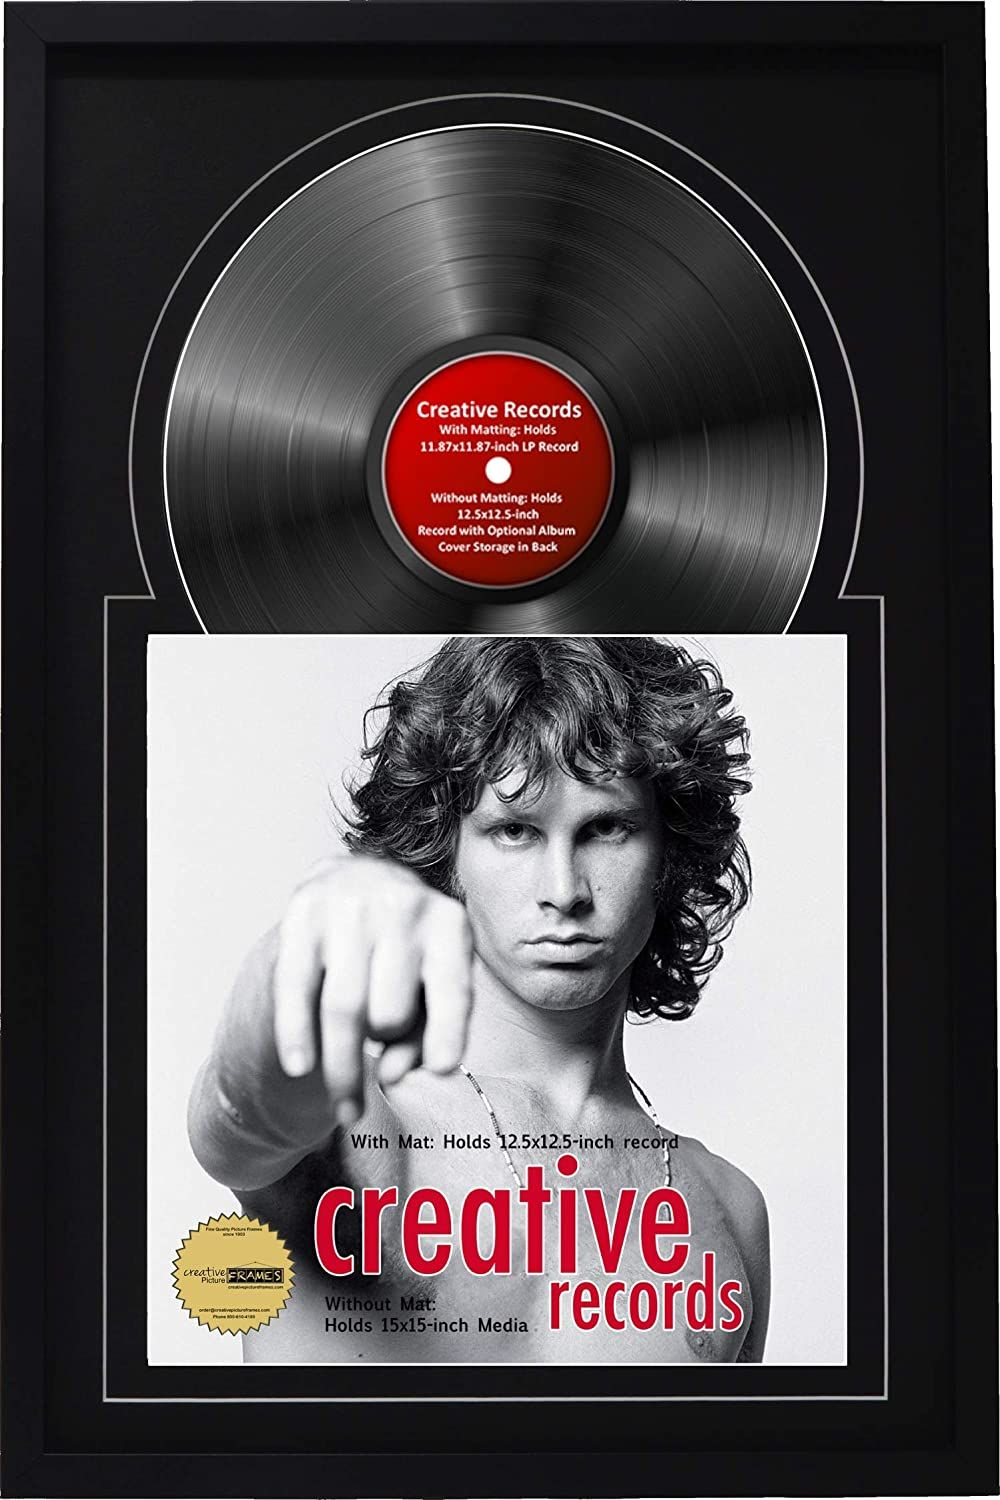 Pin By Your Perfect Decor Decoratin On Photo Frames Photo Holders In 2020 Album Covers Album Cover